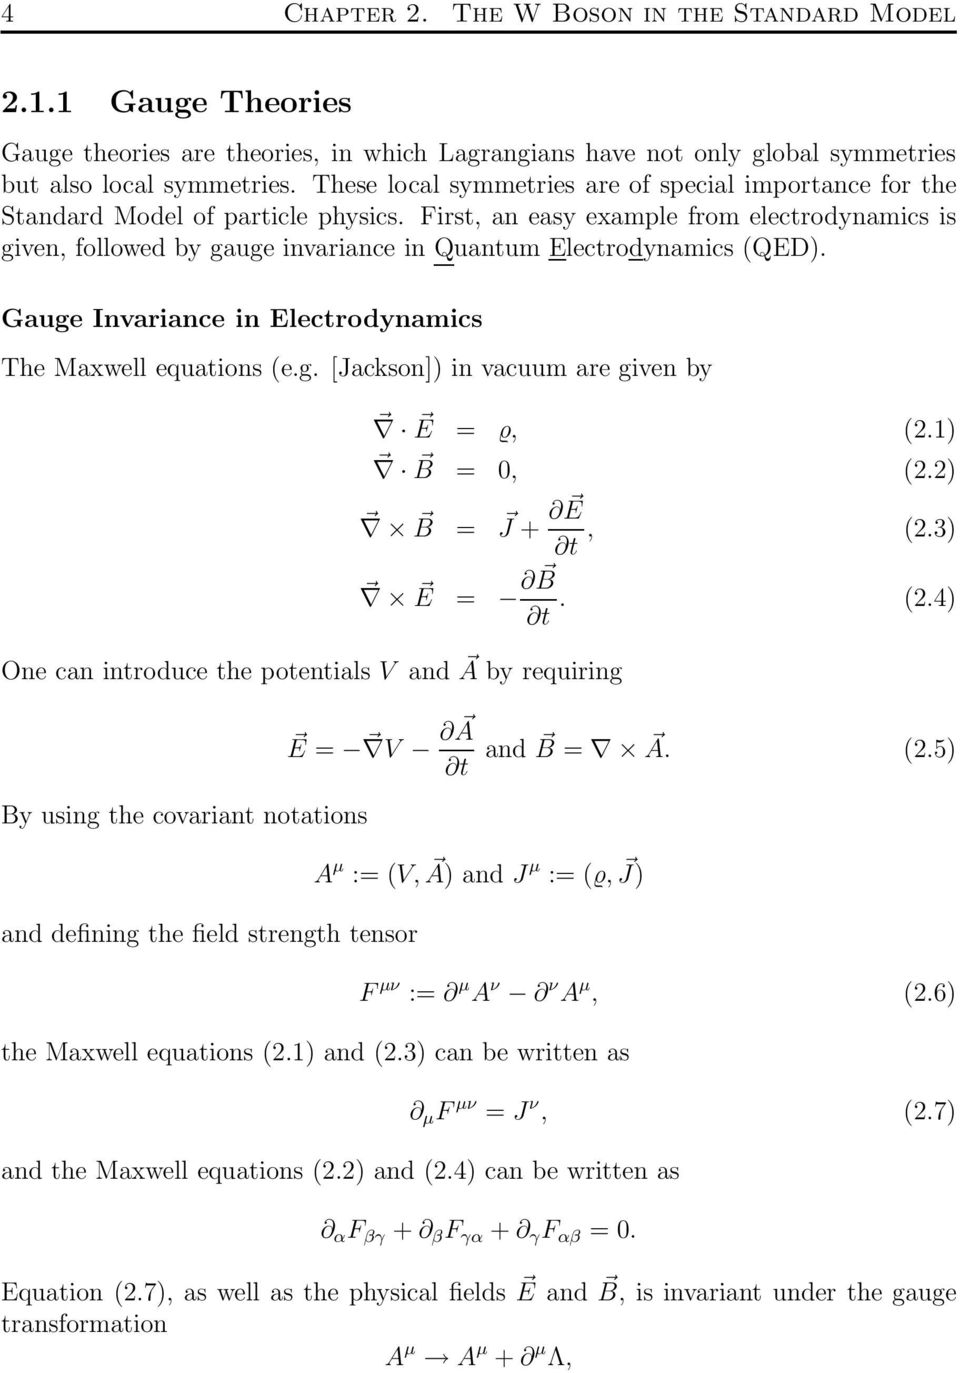 First, an easy example from electrodynamics is given, followed by gauge invariance in Quantum Electrodynamics (QED). Gauge Invariance in Electrodynamics The Maxwell equations (e.g. [Jackson]) in vacuum are given by E =, (2.